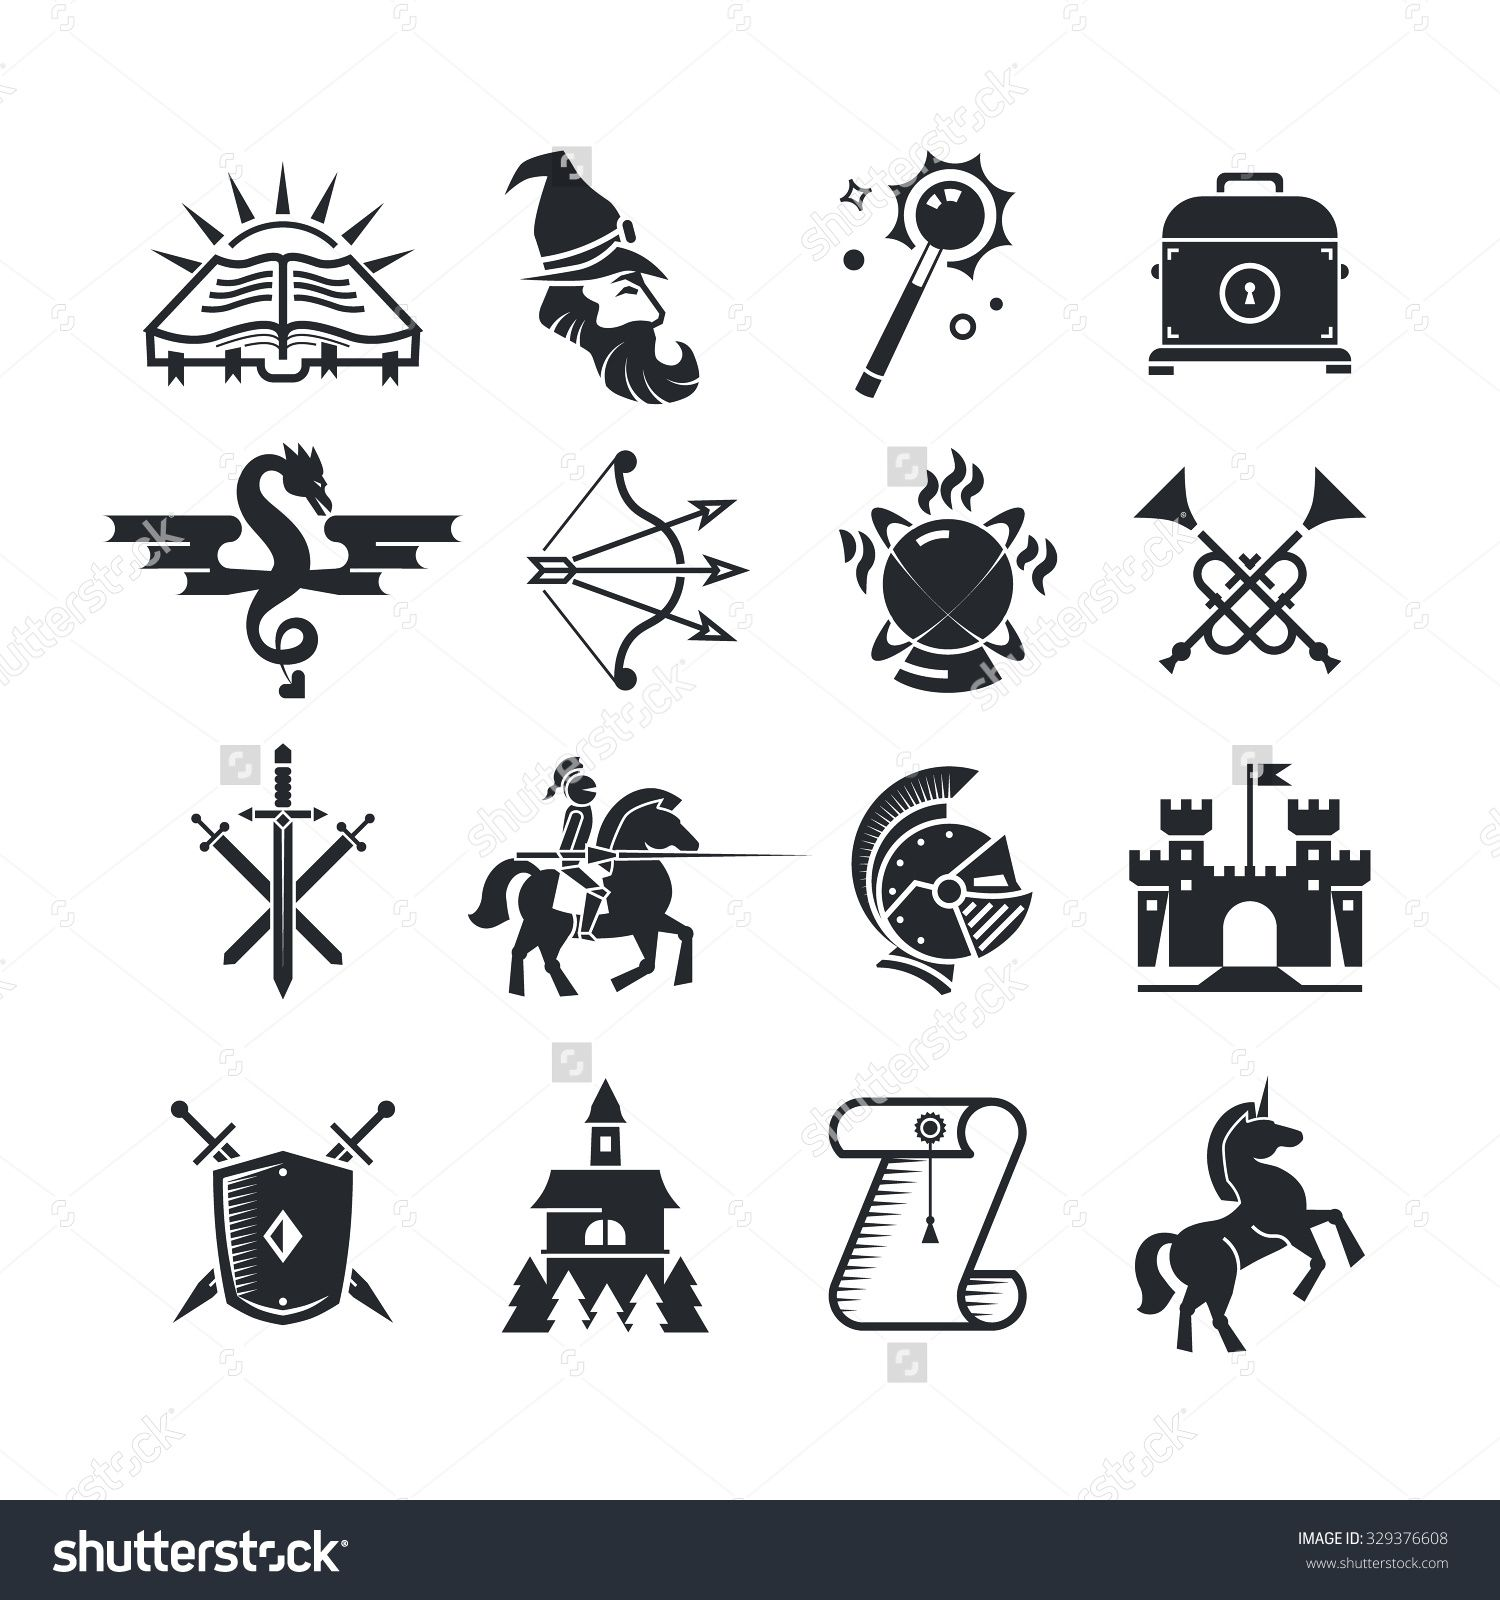 Medieval knight icon set icon set identity design and logos buycottarizona